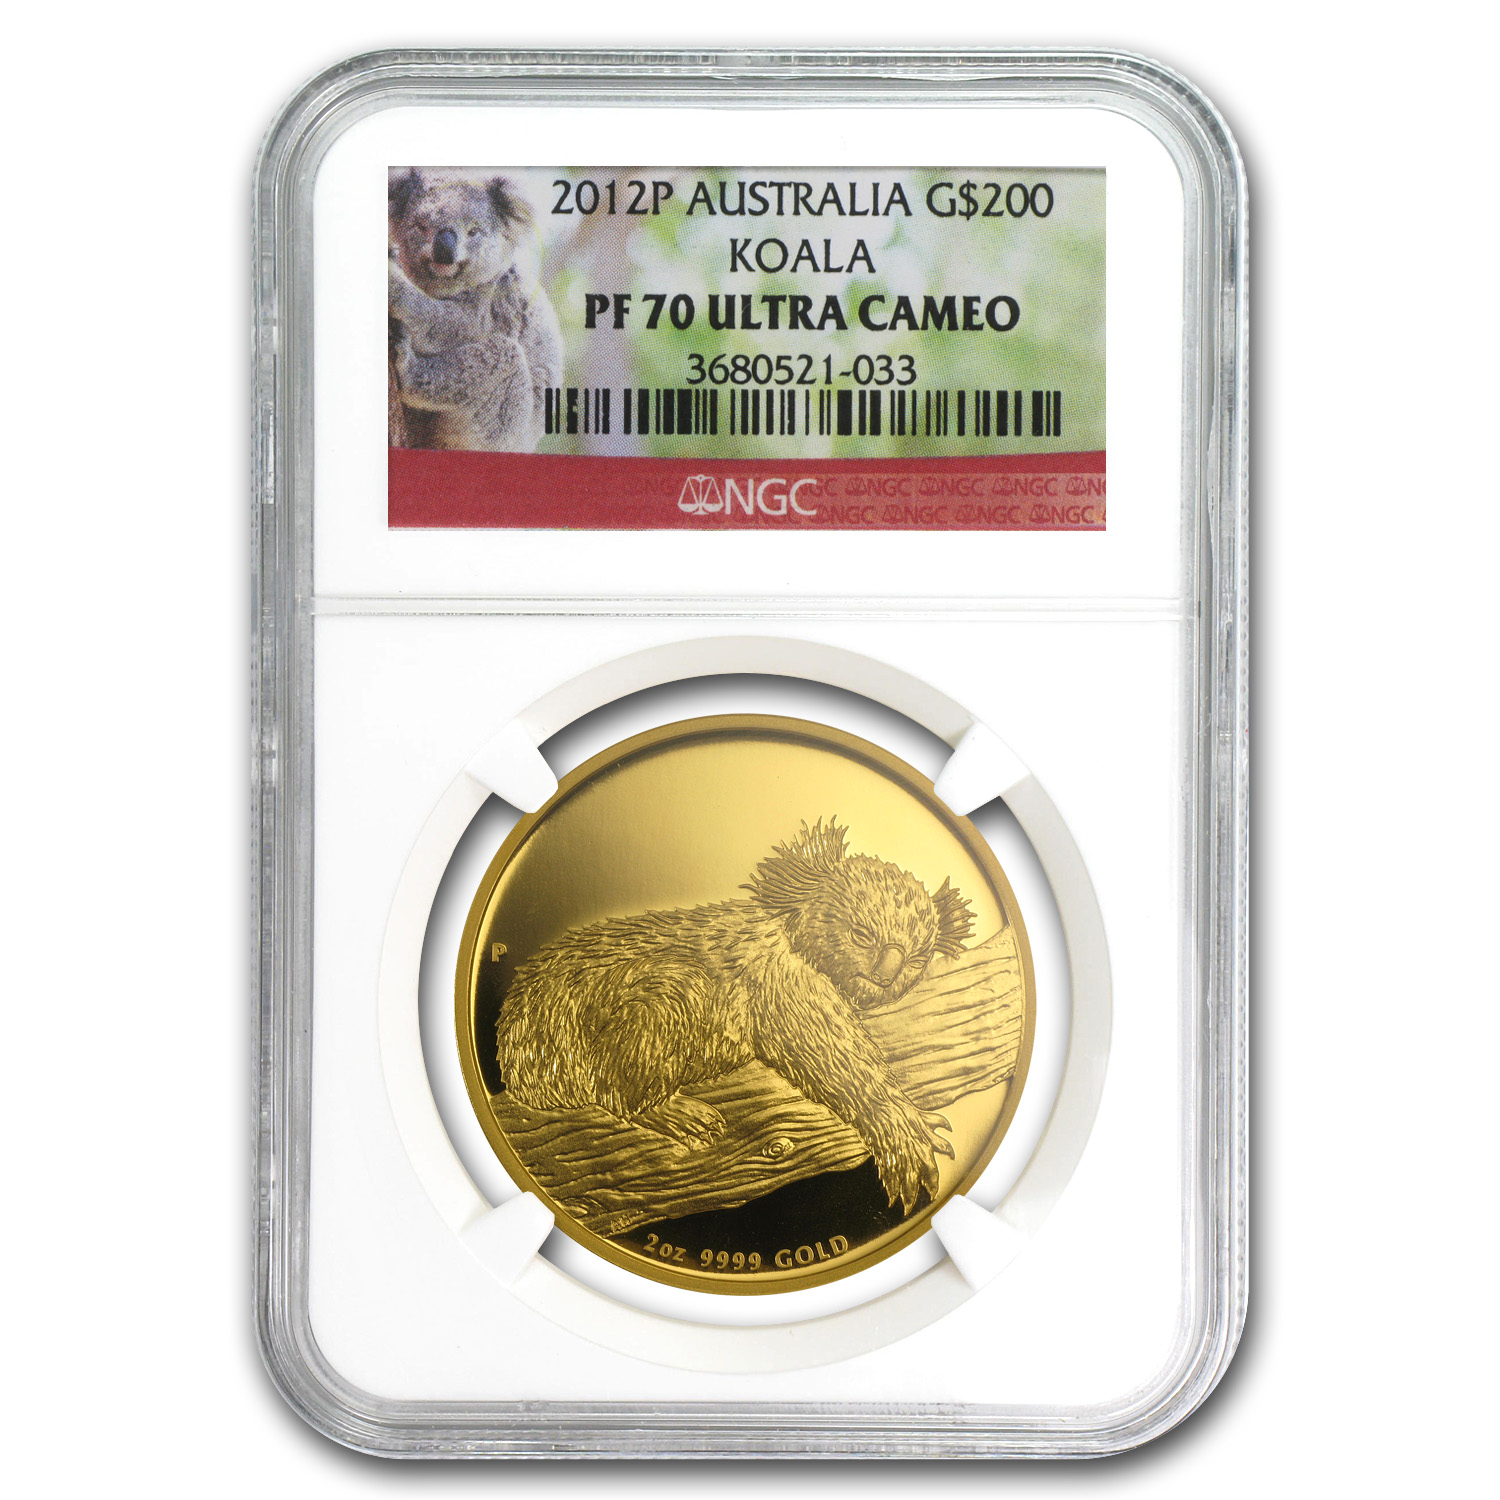 2012 2 oz Proof Australian Gold Koala PF-70 NGC